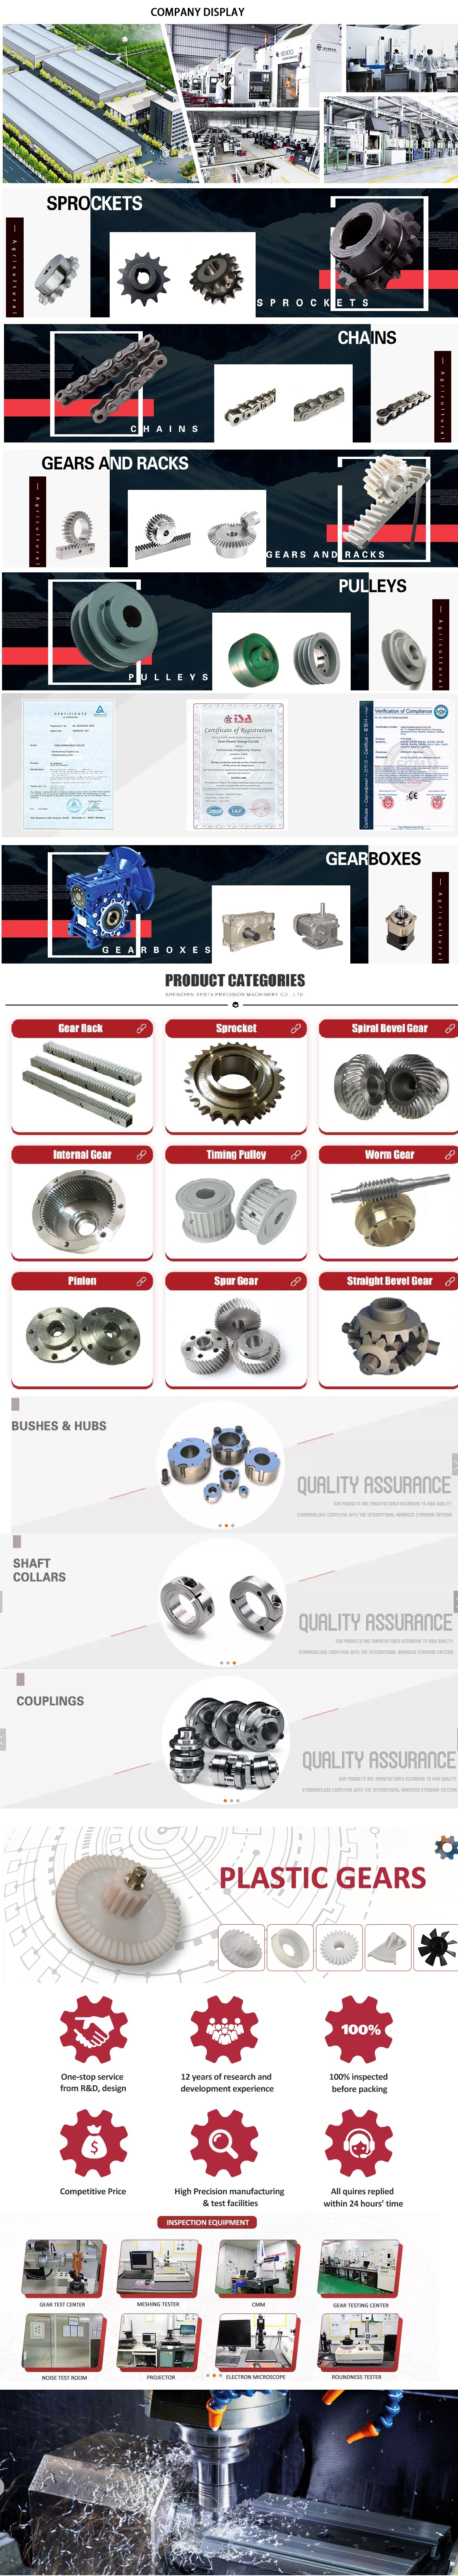 Best  made in China - replacement parts - agricultural gearbox manufacturer in China High   2510 bush hog gearbox   Helsinki Finland   Precision, Double Row Self-Aligning Ball Bearings 2303 with ce certificate top quality low price suitable for Tractor, Agricultural machines, right angle pto shaft drive